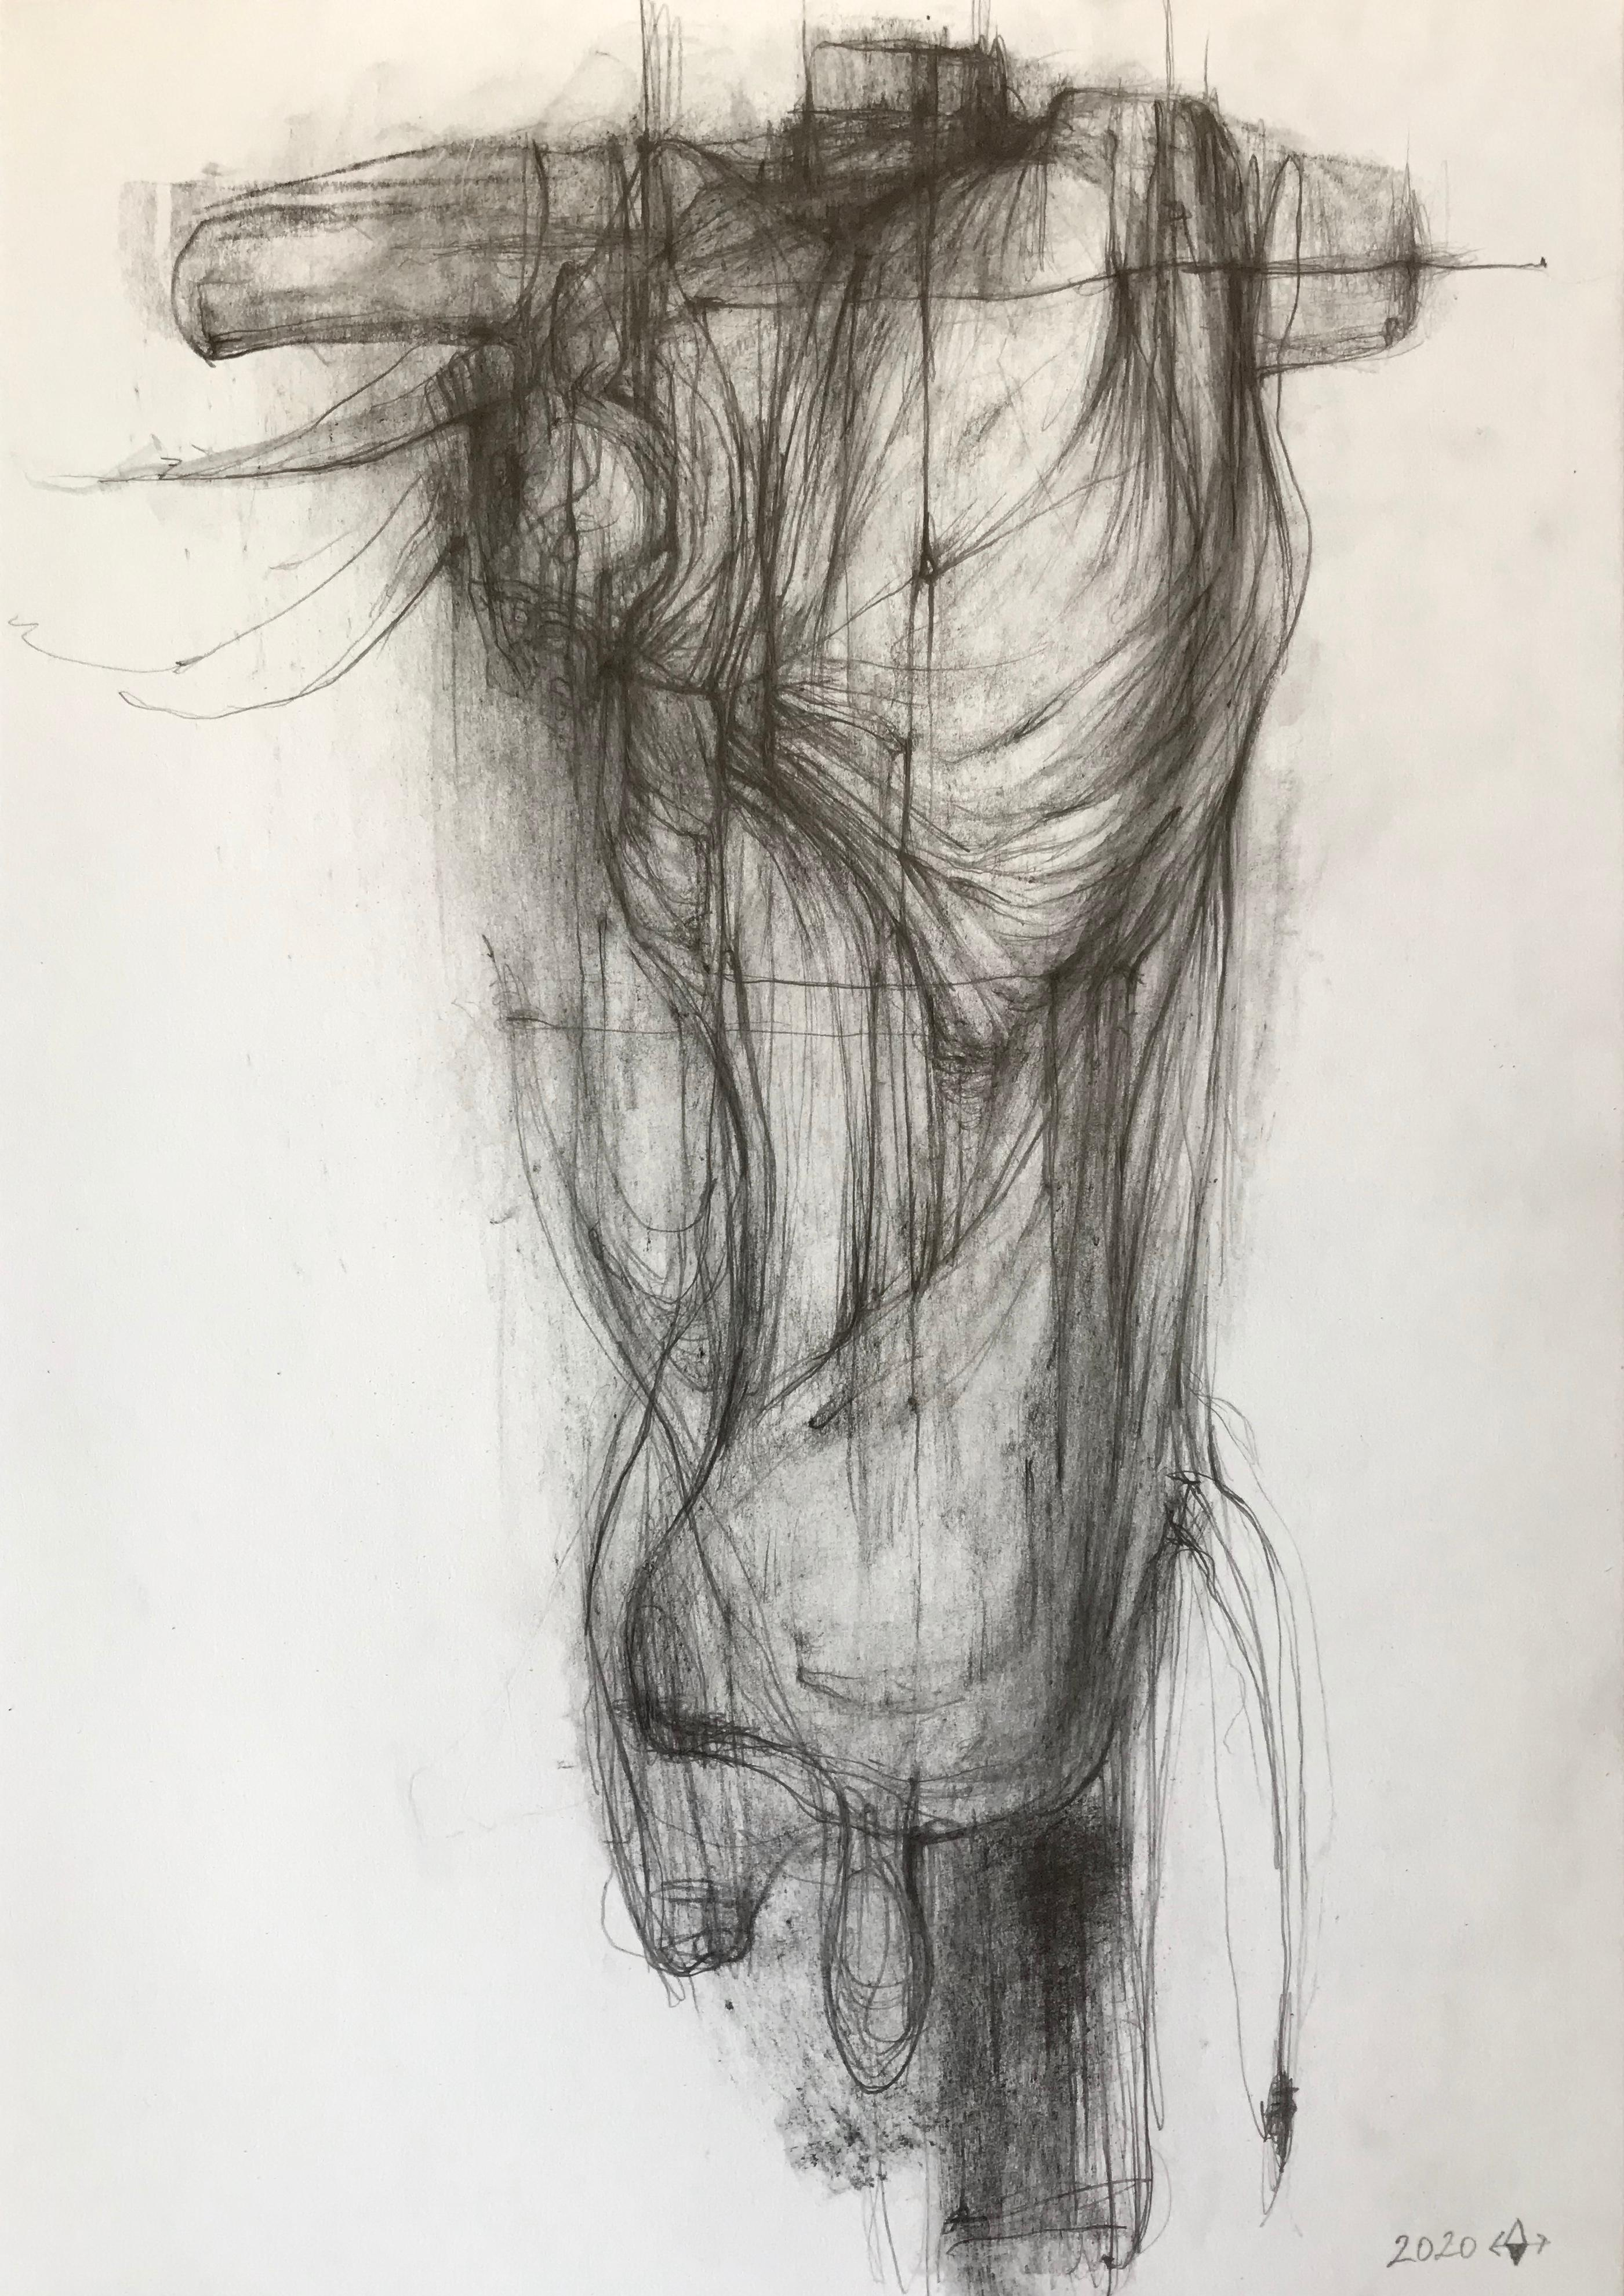 The Bull II- expressive line drawing